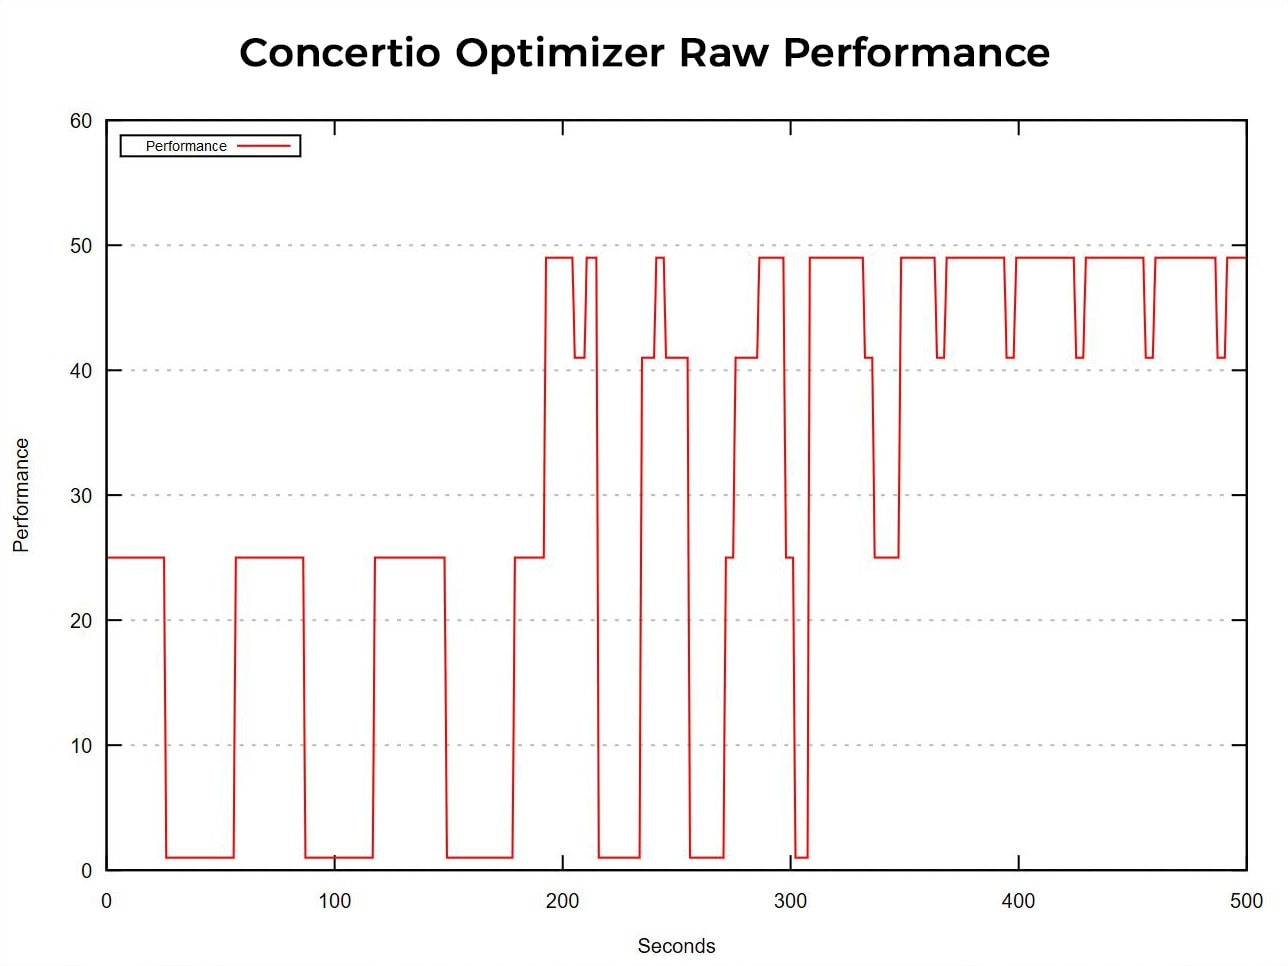 How to tune applications with Concertio Optimizer